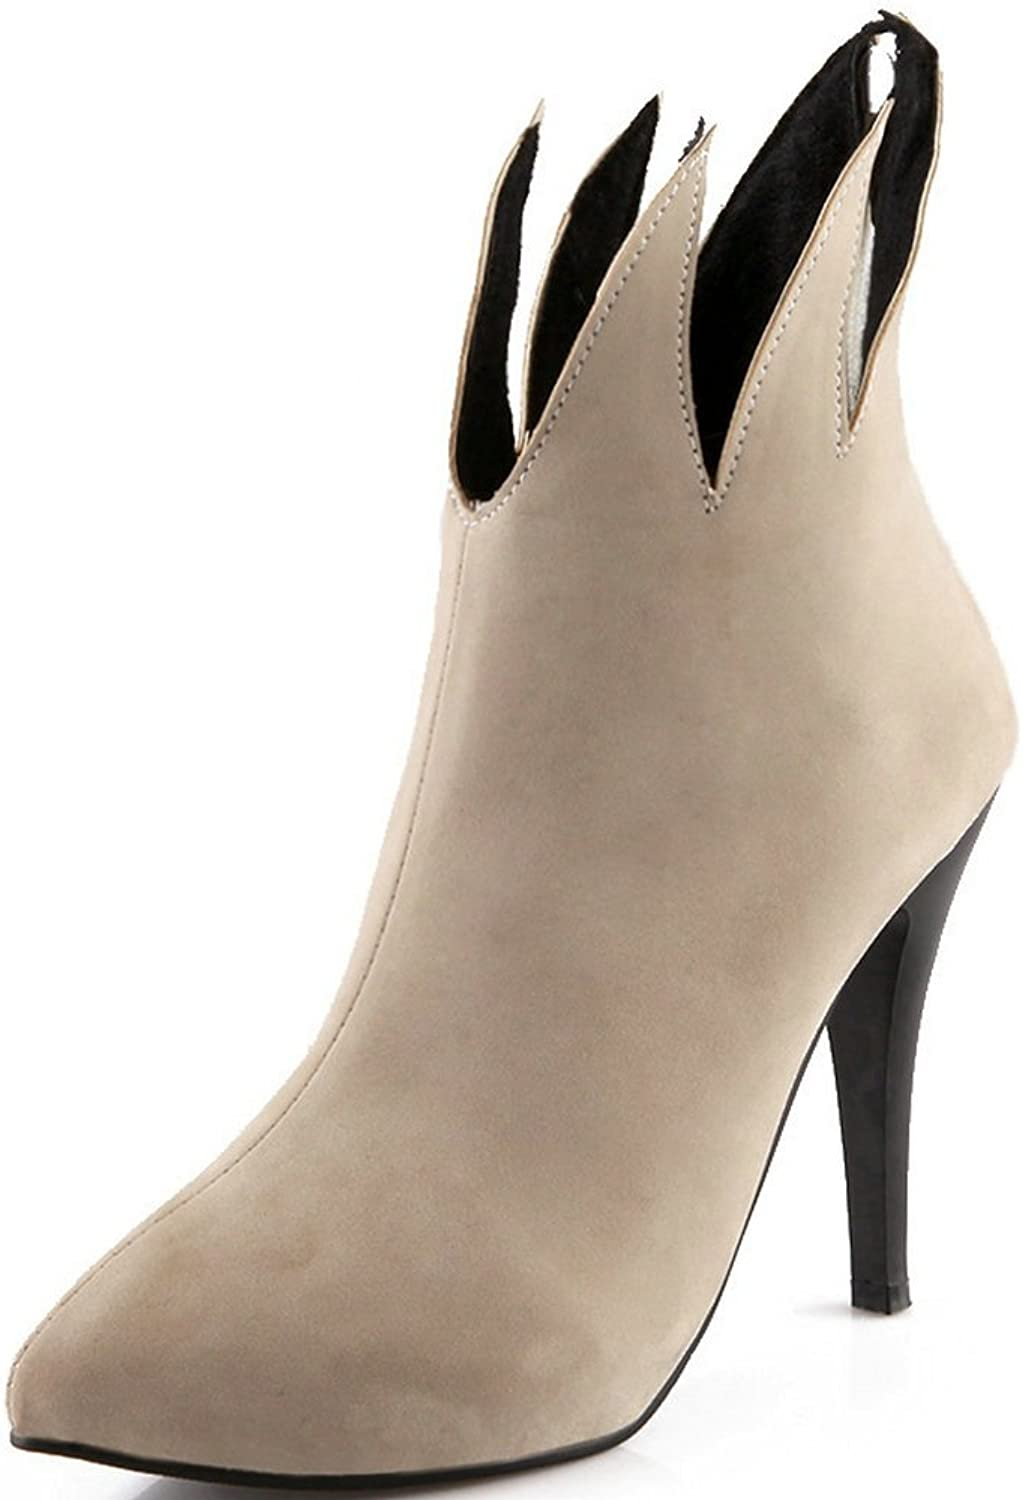 AIWEIYi Women's Flock Skin Pointed Toe Cut-Outs Spring Fall High Heels Ankle Boots Black